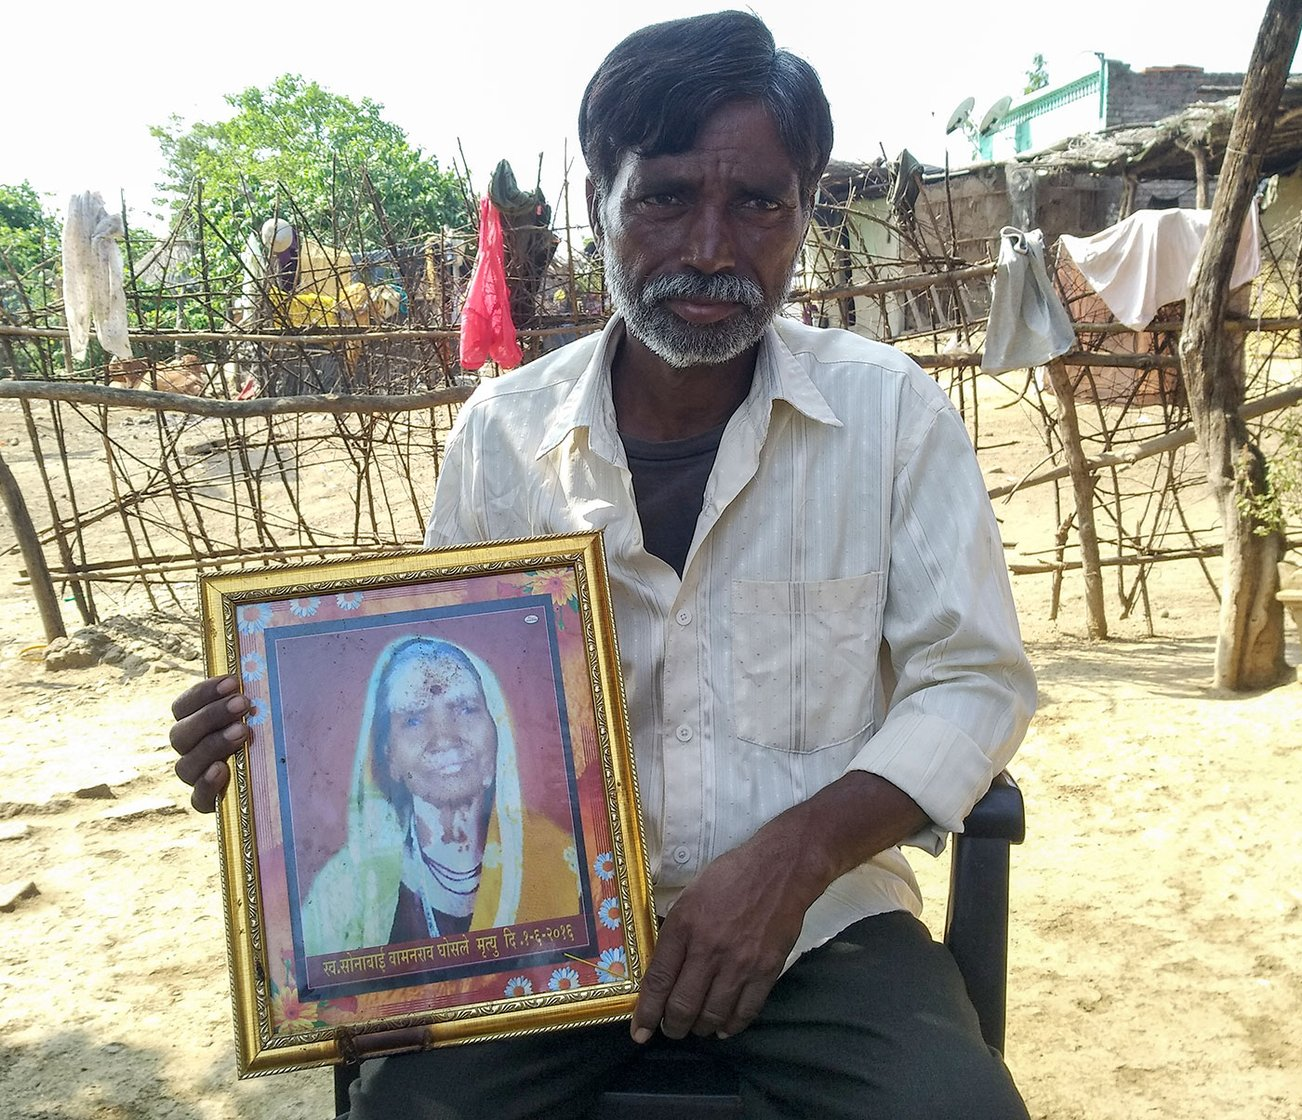 Subhash Ghosale, a tribal farmer in village Borati, holds the photo of her mother Sonabai Ghosale, T1's first victim. She died in T1's attack on her field close to the village on June 1, 2016.